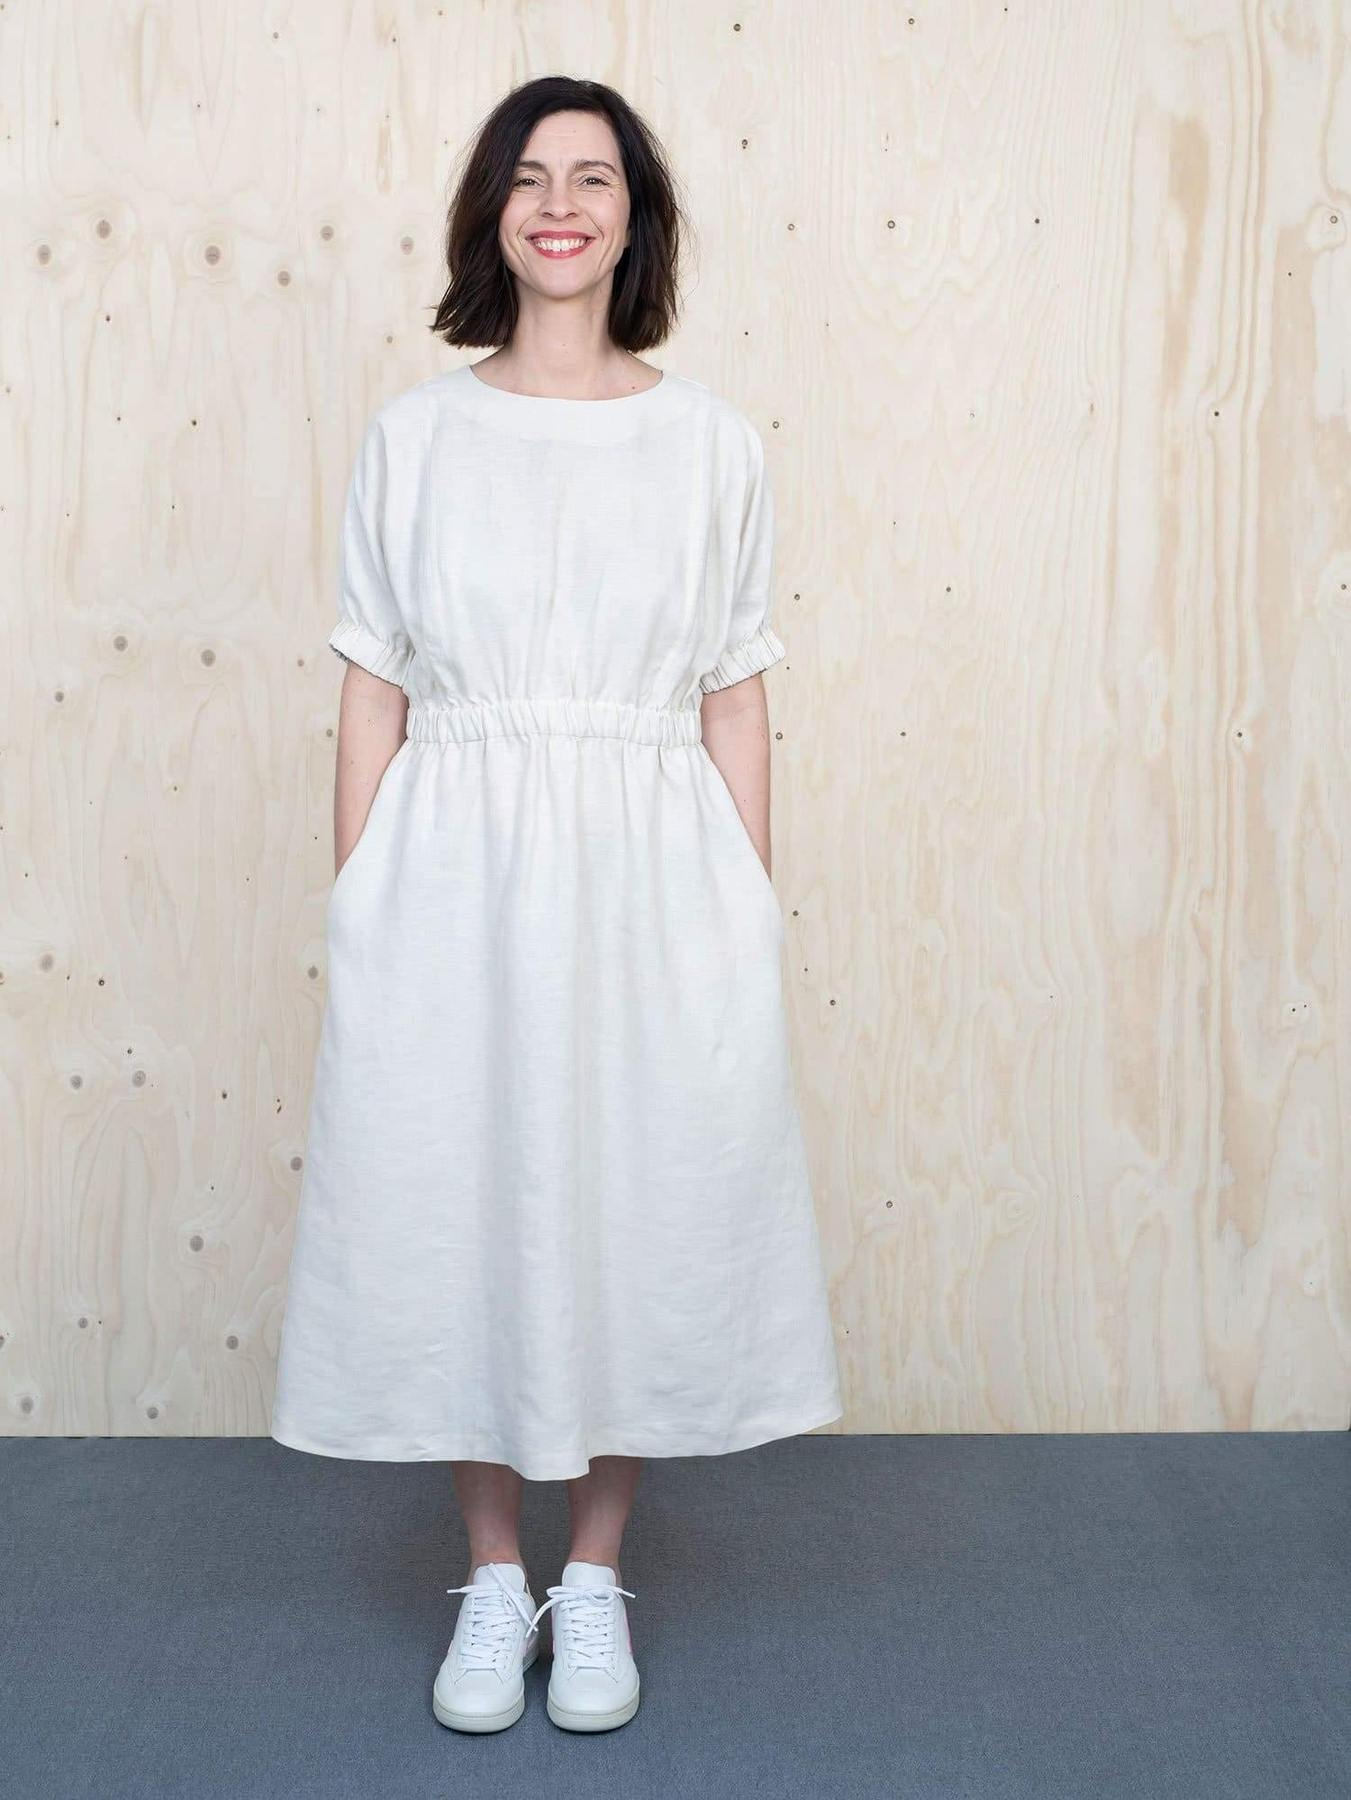 The Assembly Line Cuff Dress